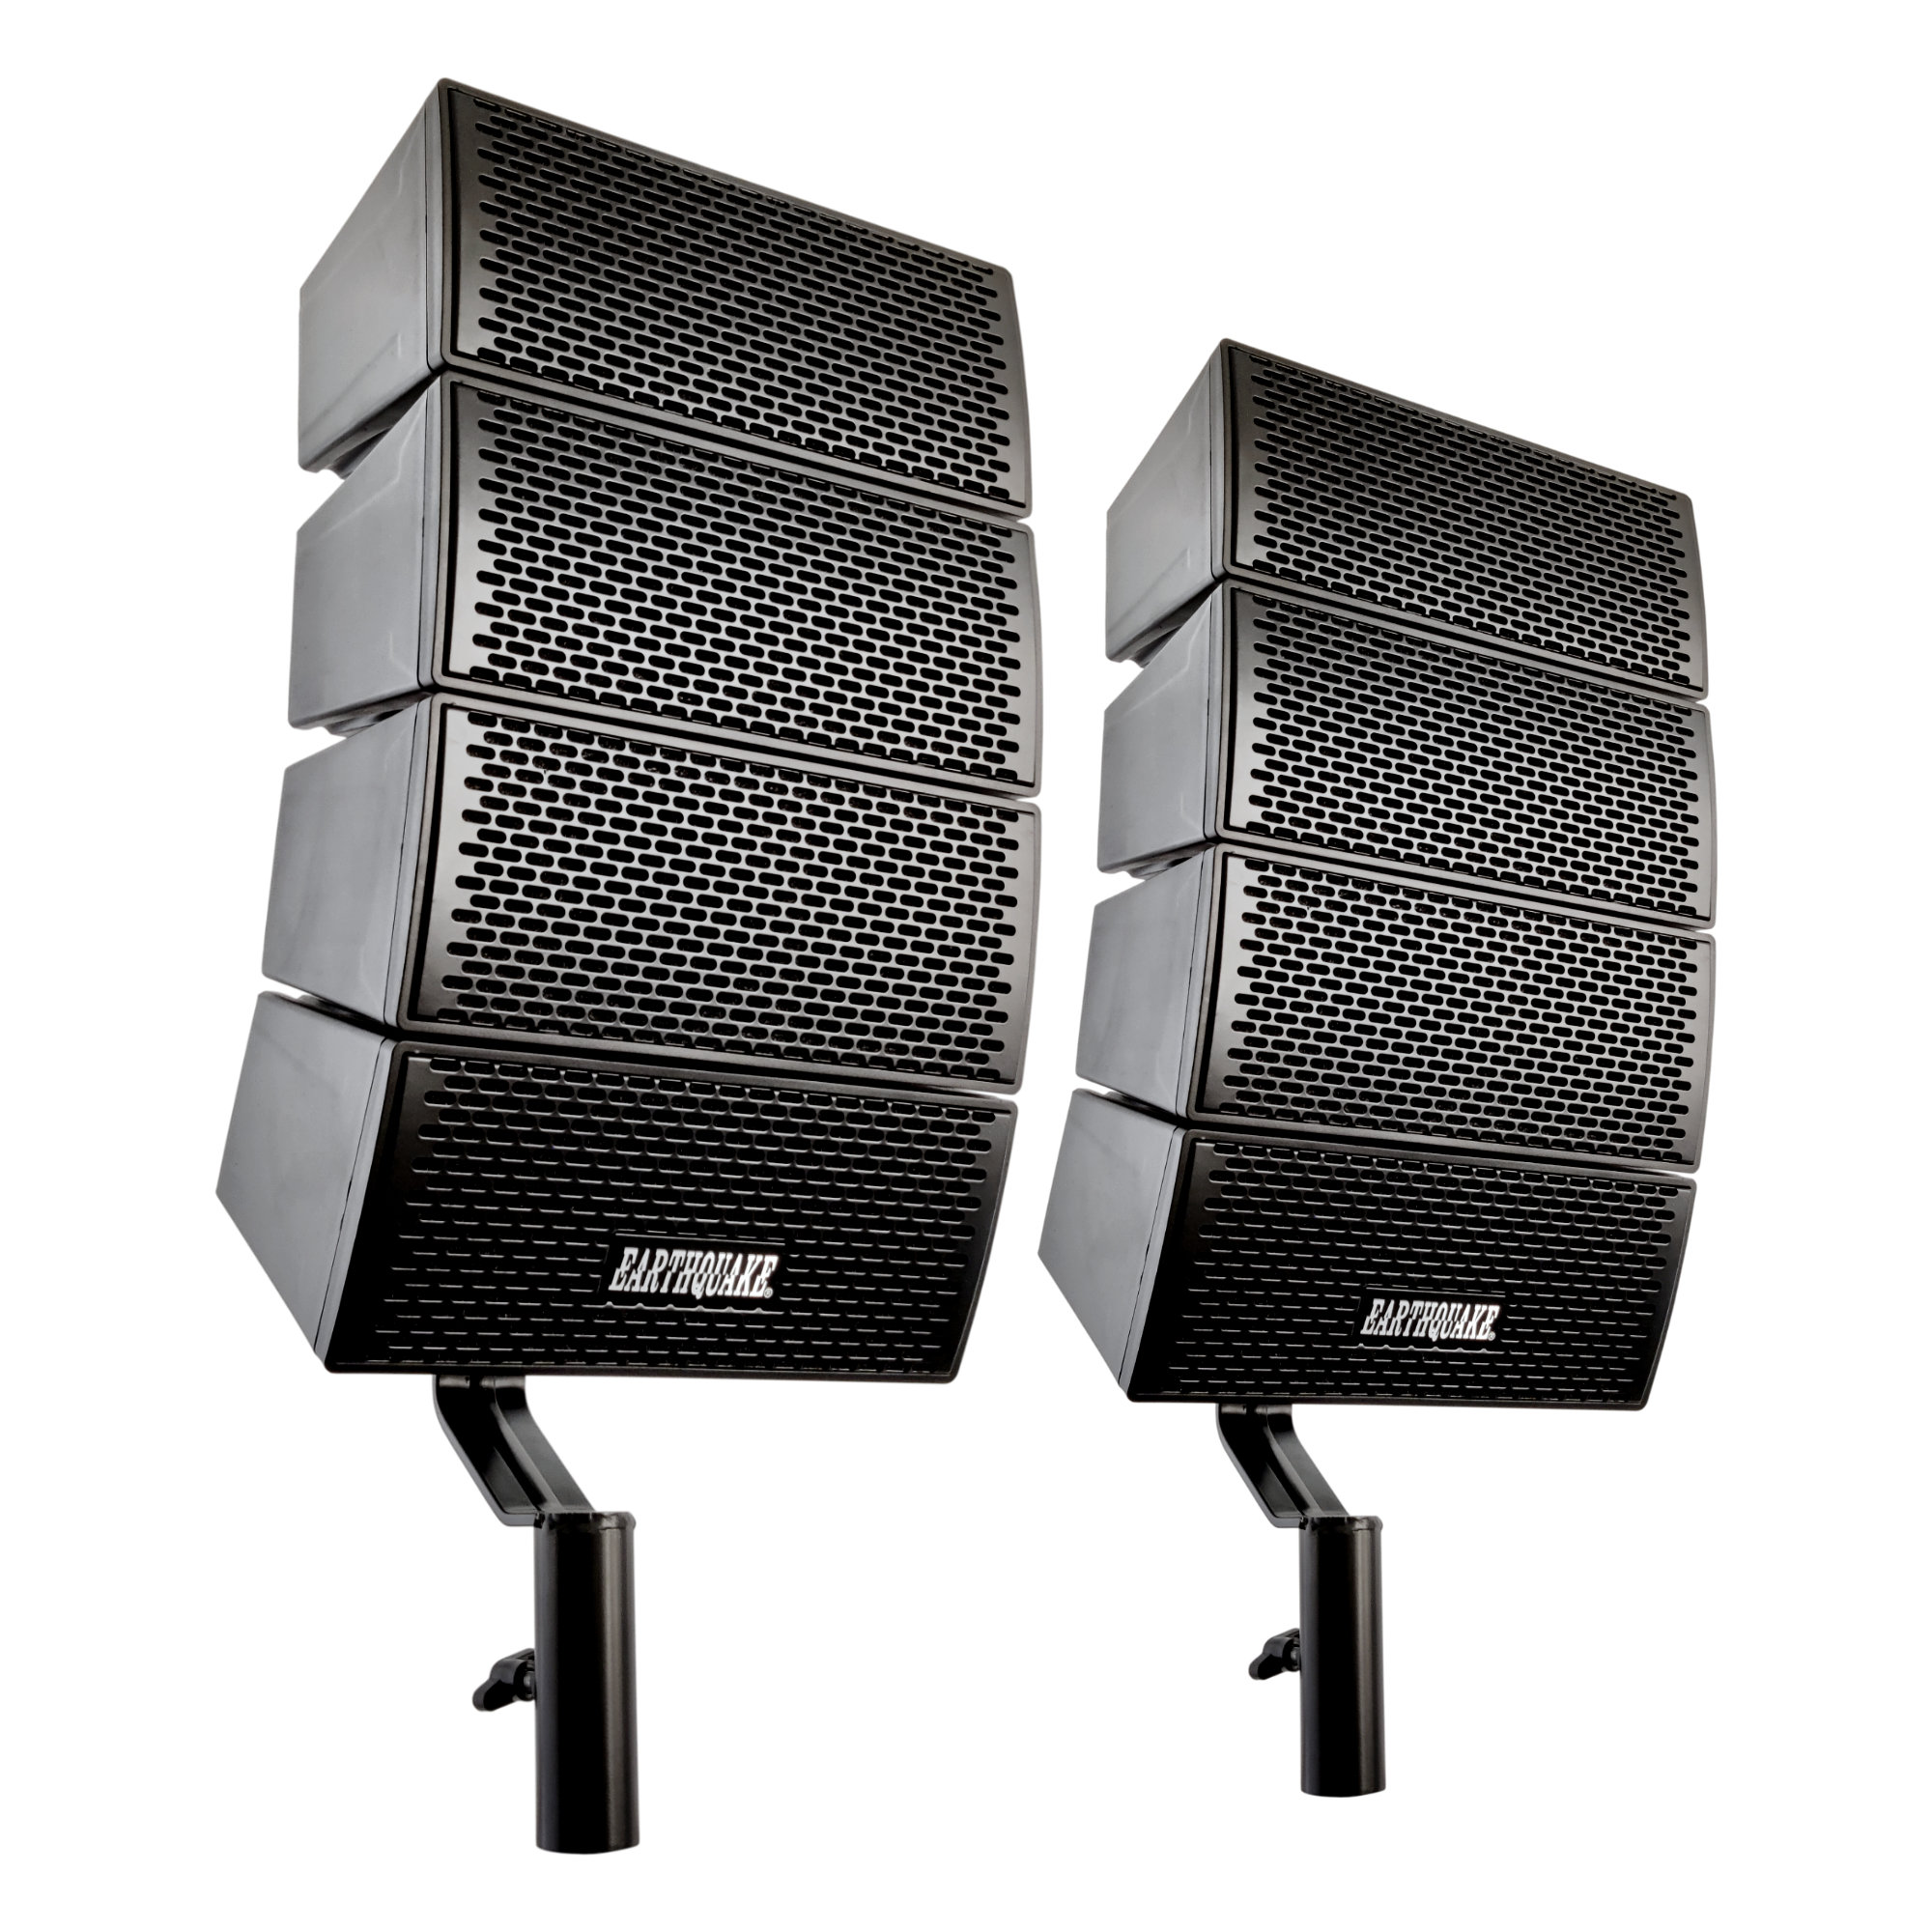 DJ-ARRAY GEN2